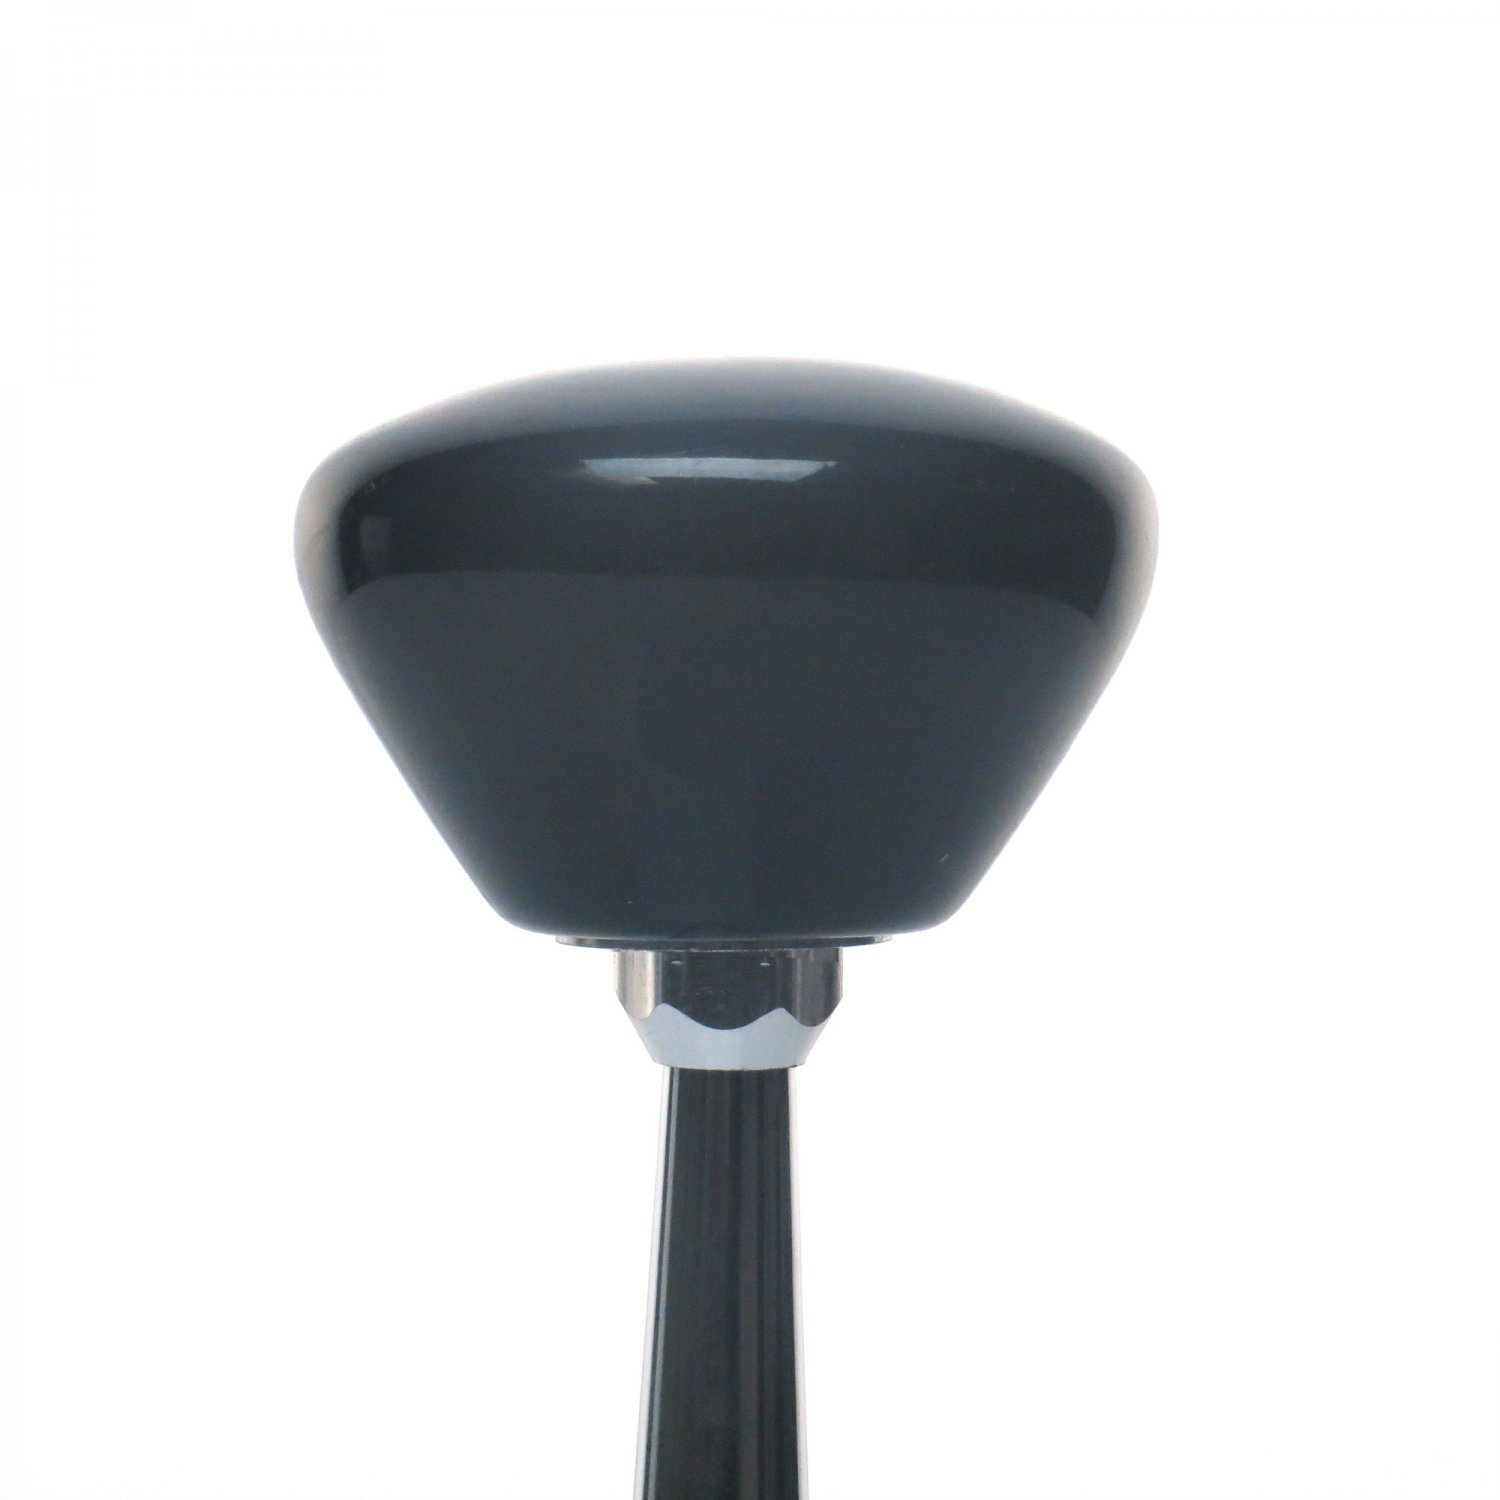 American Shifter 146147 Black Retro Shift Knob with M16 x 1.5 Insert JDMAF